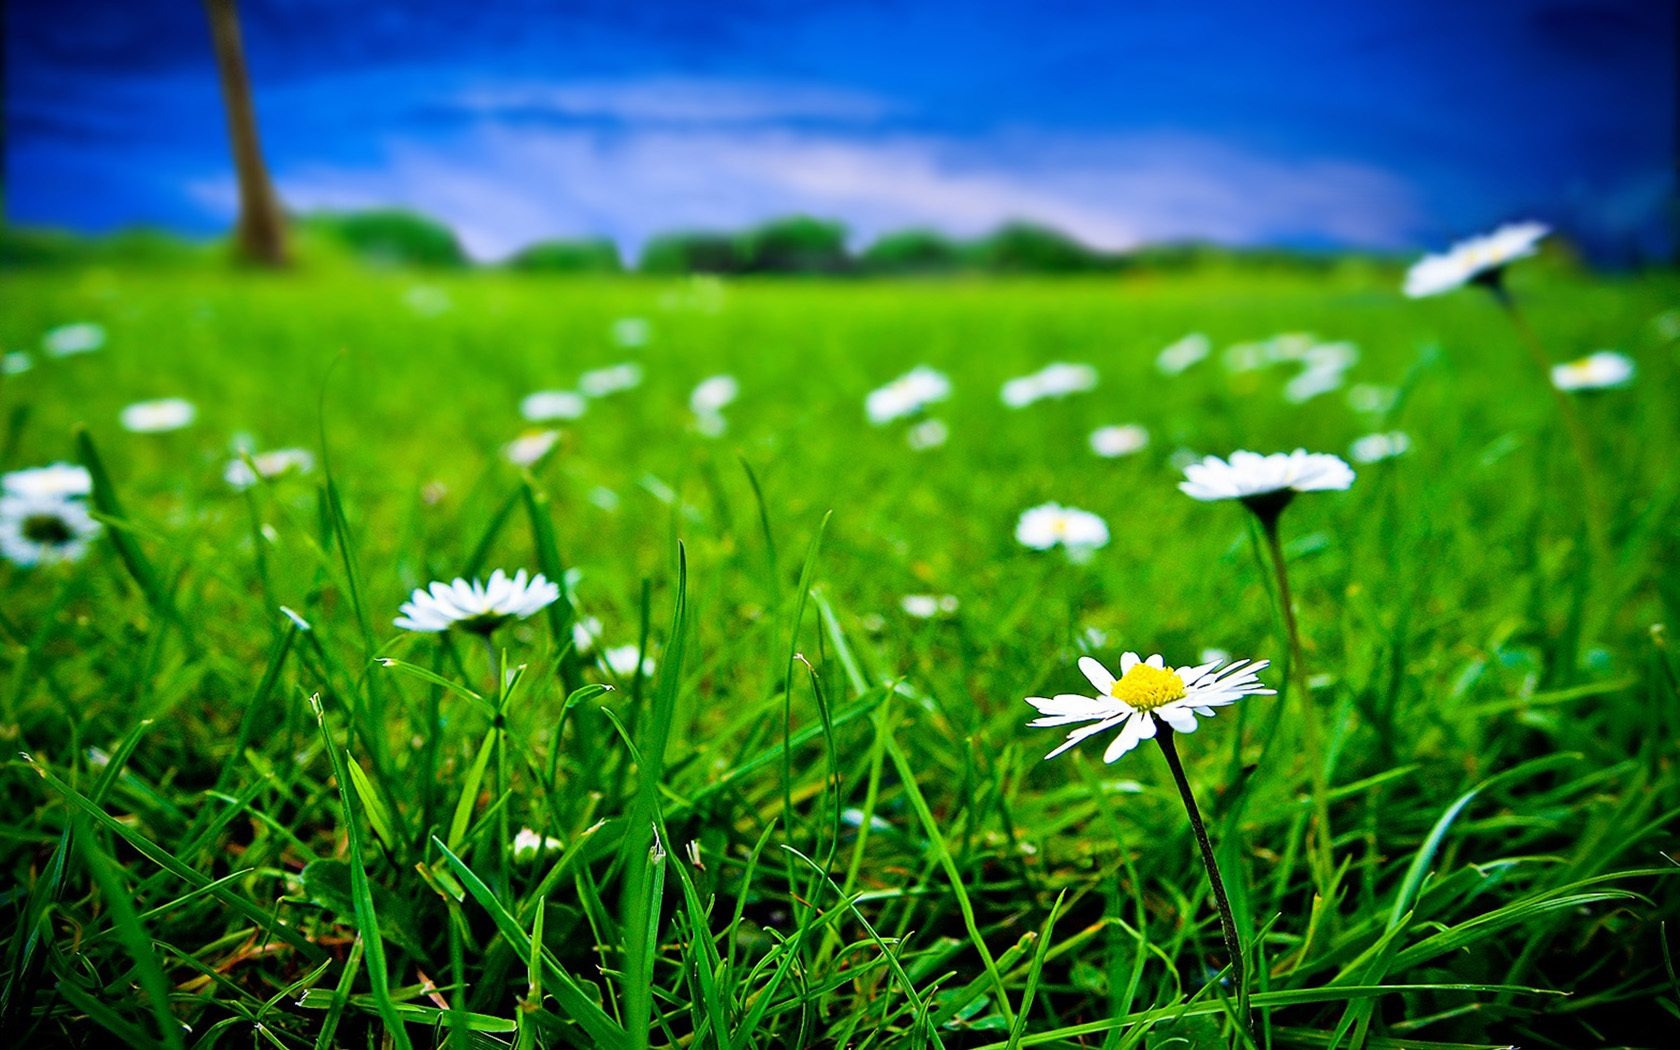 Wallpaper Green Grass And White Flowers 1680x1050 Hd Picture Image